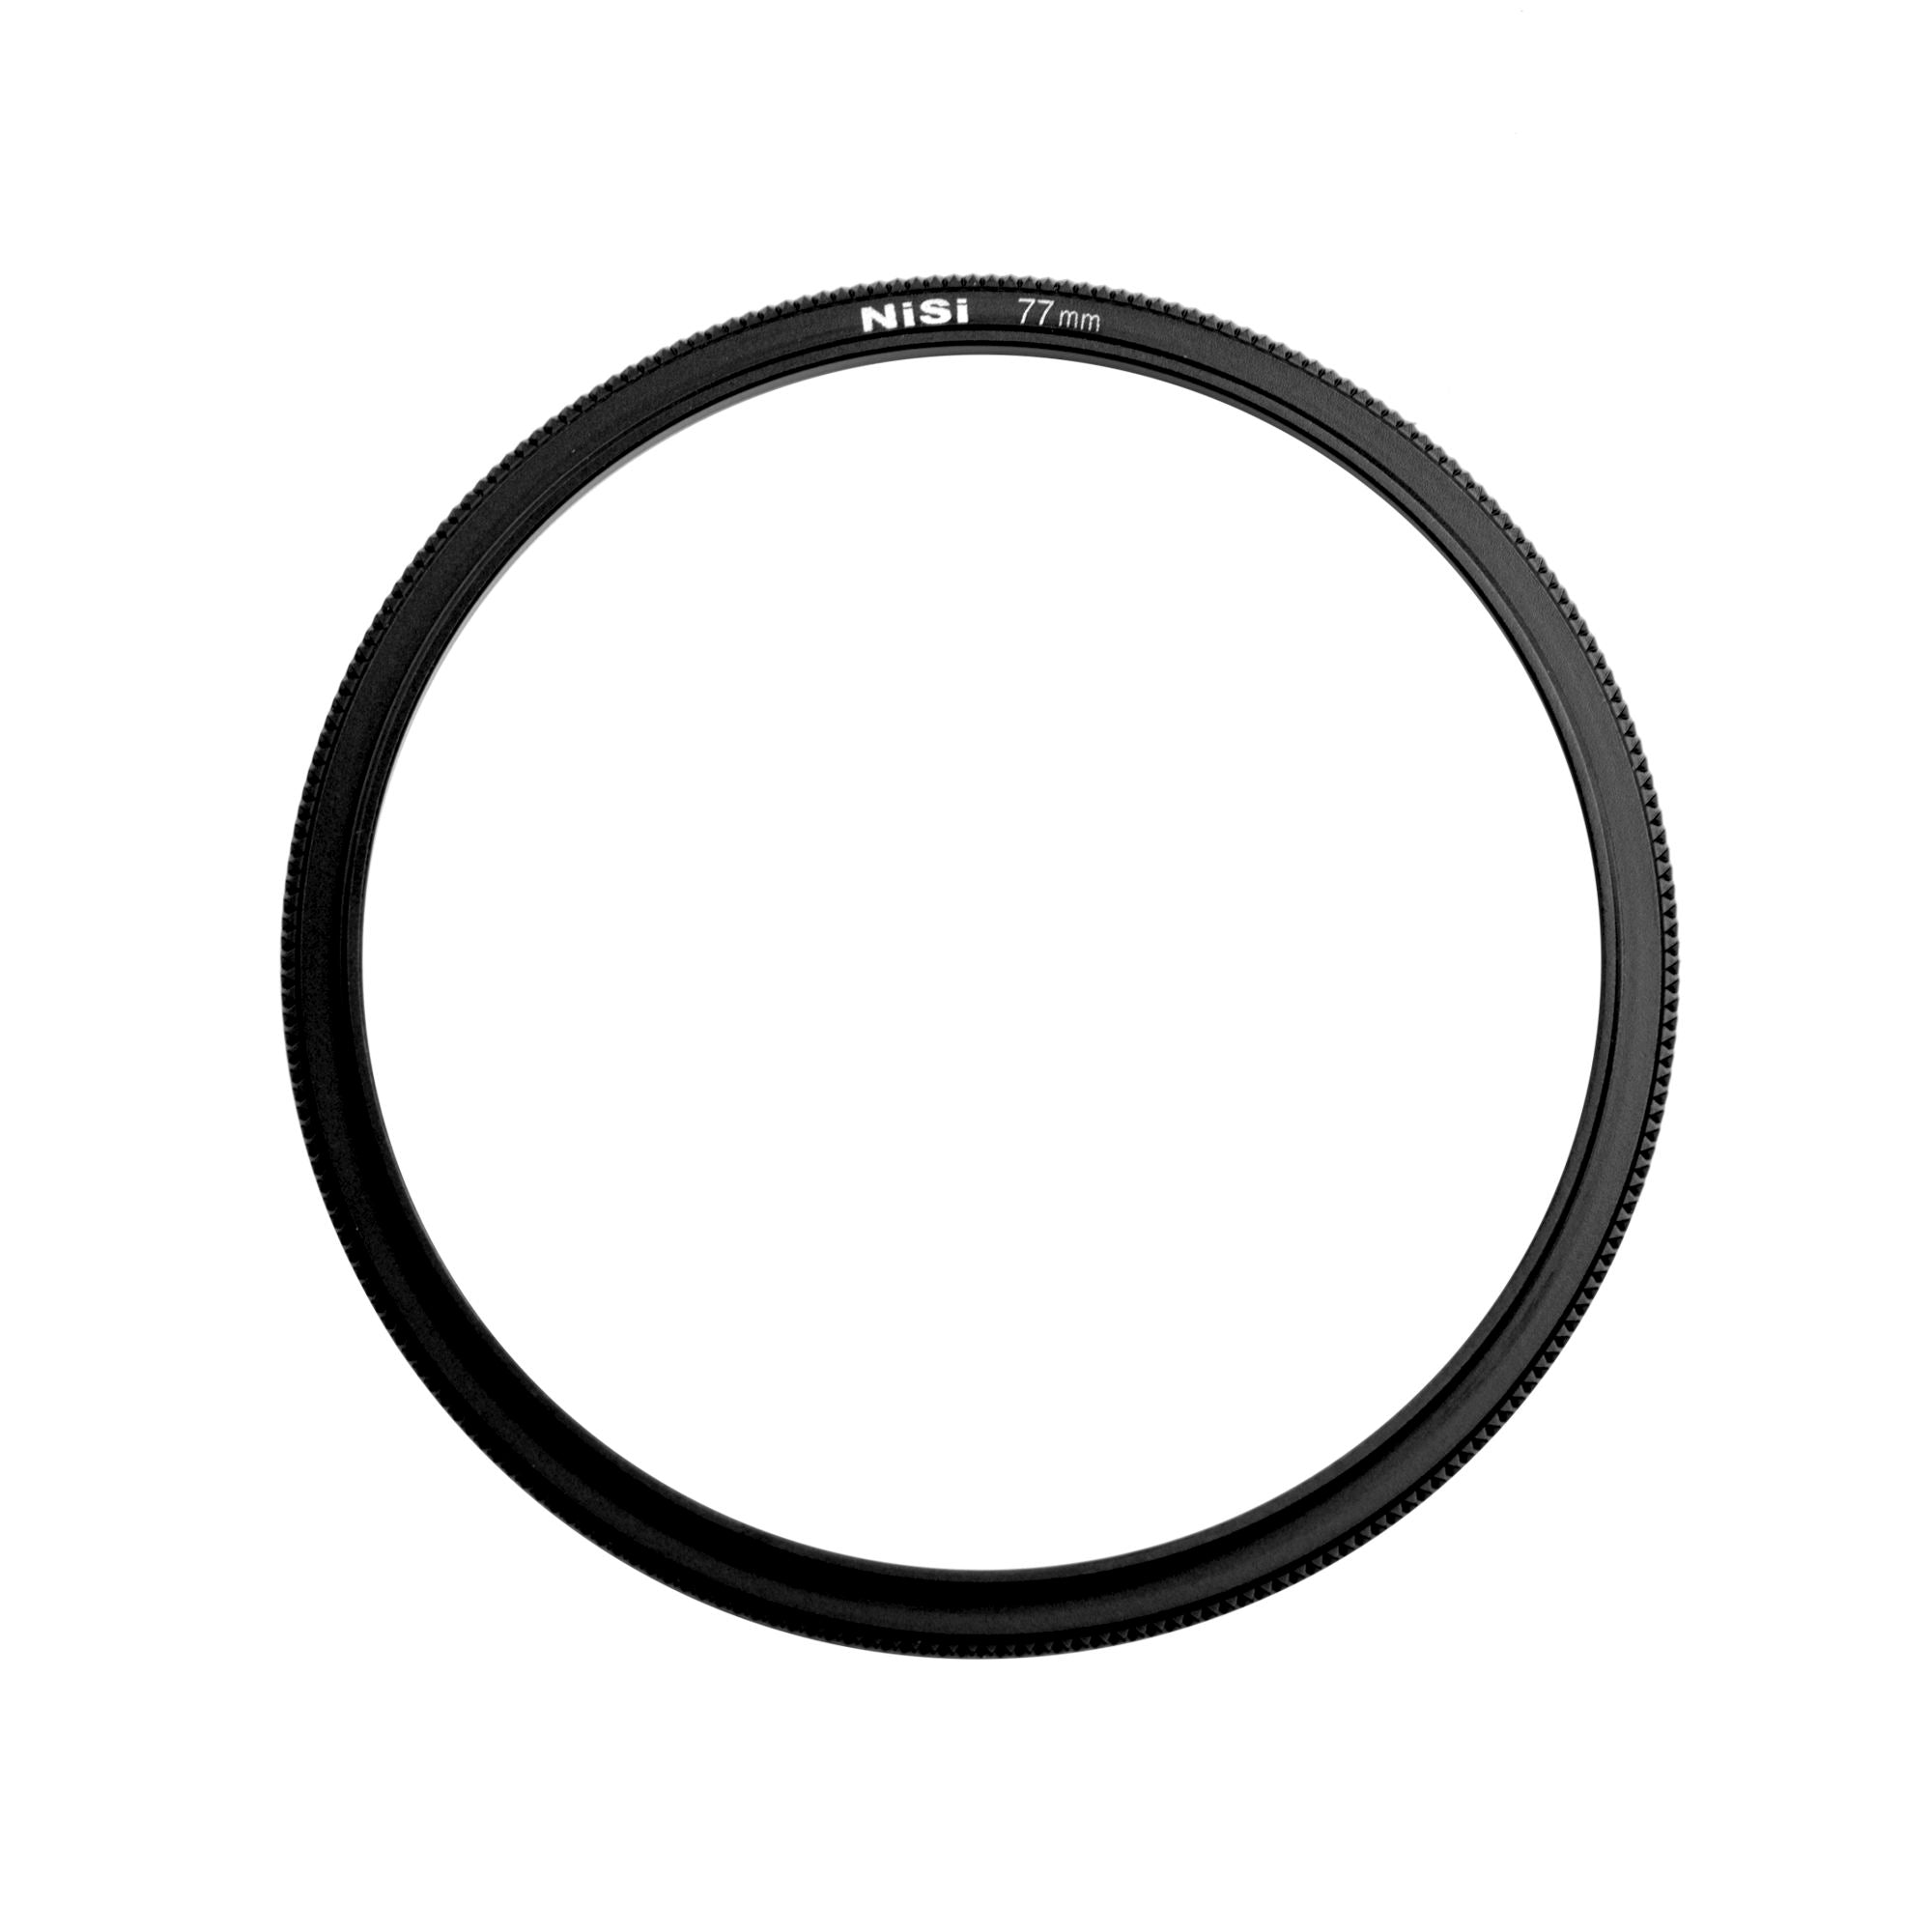 NiSi 77mm adaptor Ring  for NiSi 100mm V5-ALPHA/V5/V5 Pro/C4 Holder